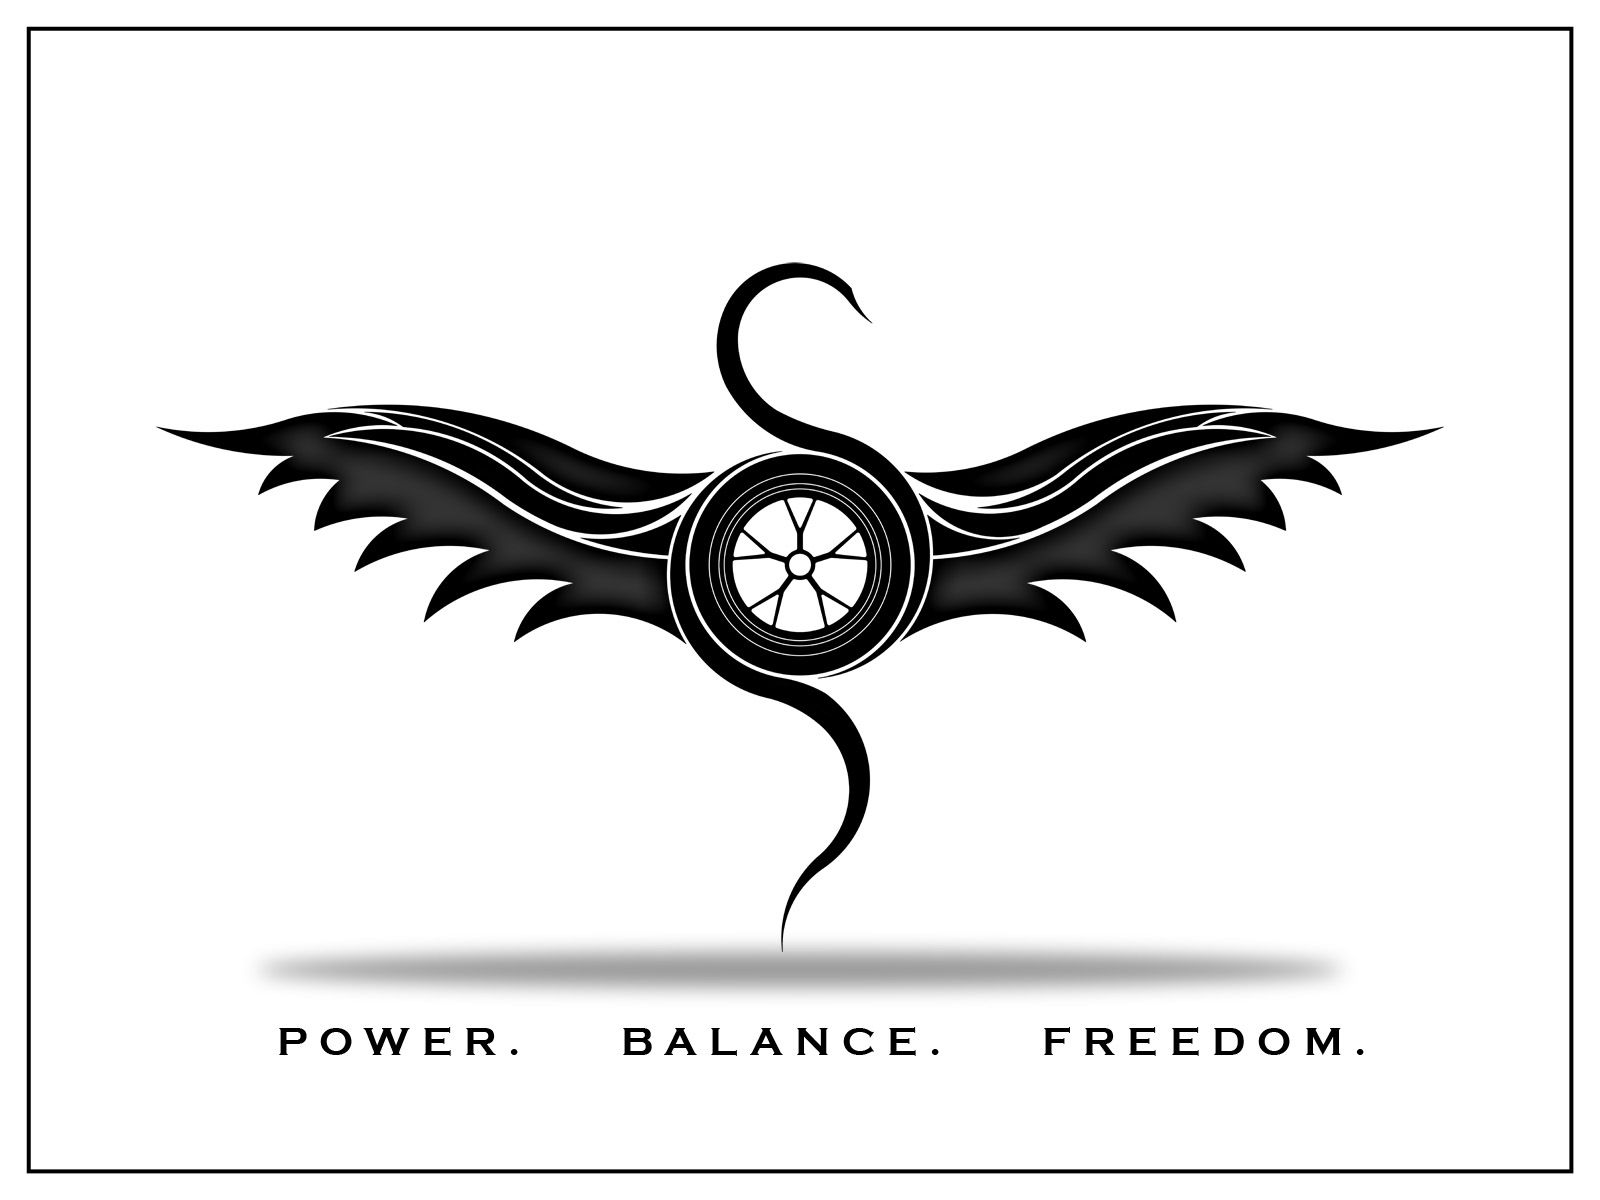 Power balance freedom by ohfive30 on deviantart relax freedom by ohfive30 on deviantart buycottarizona